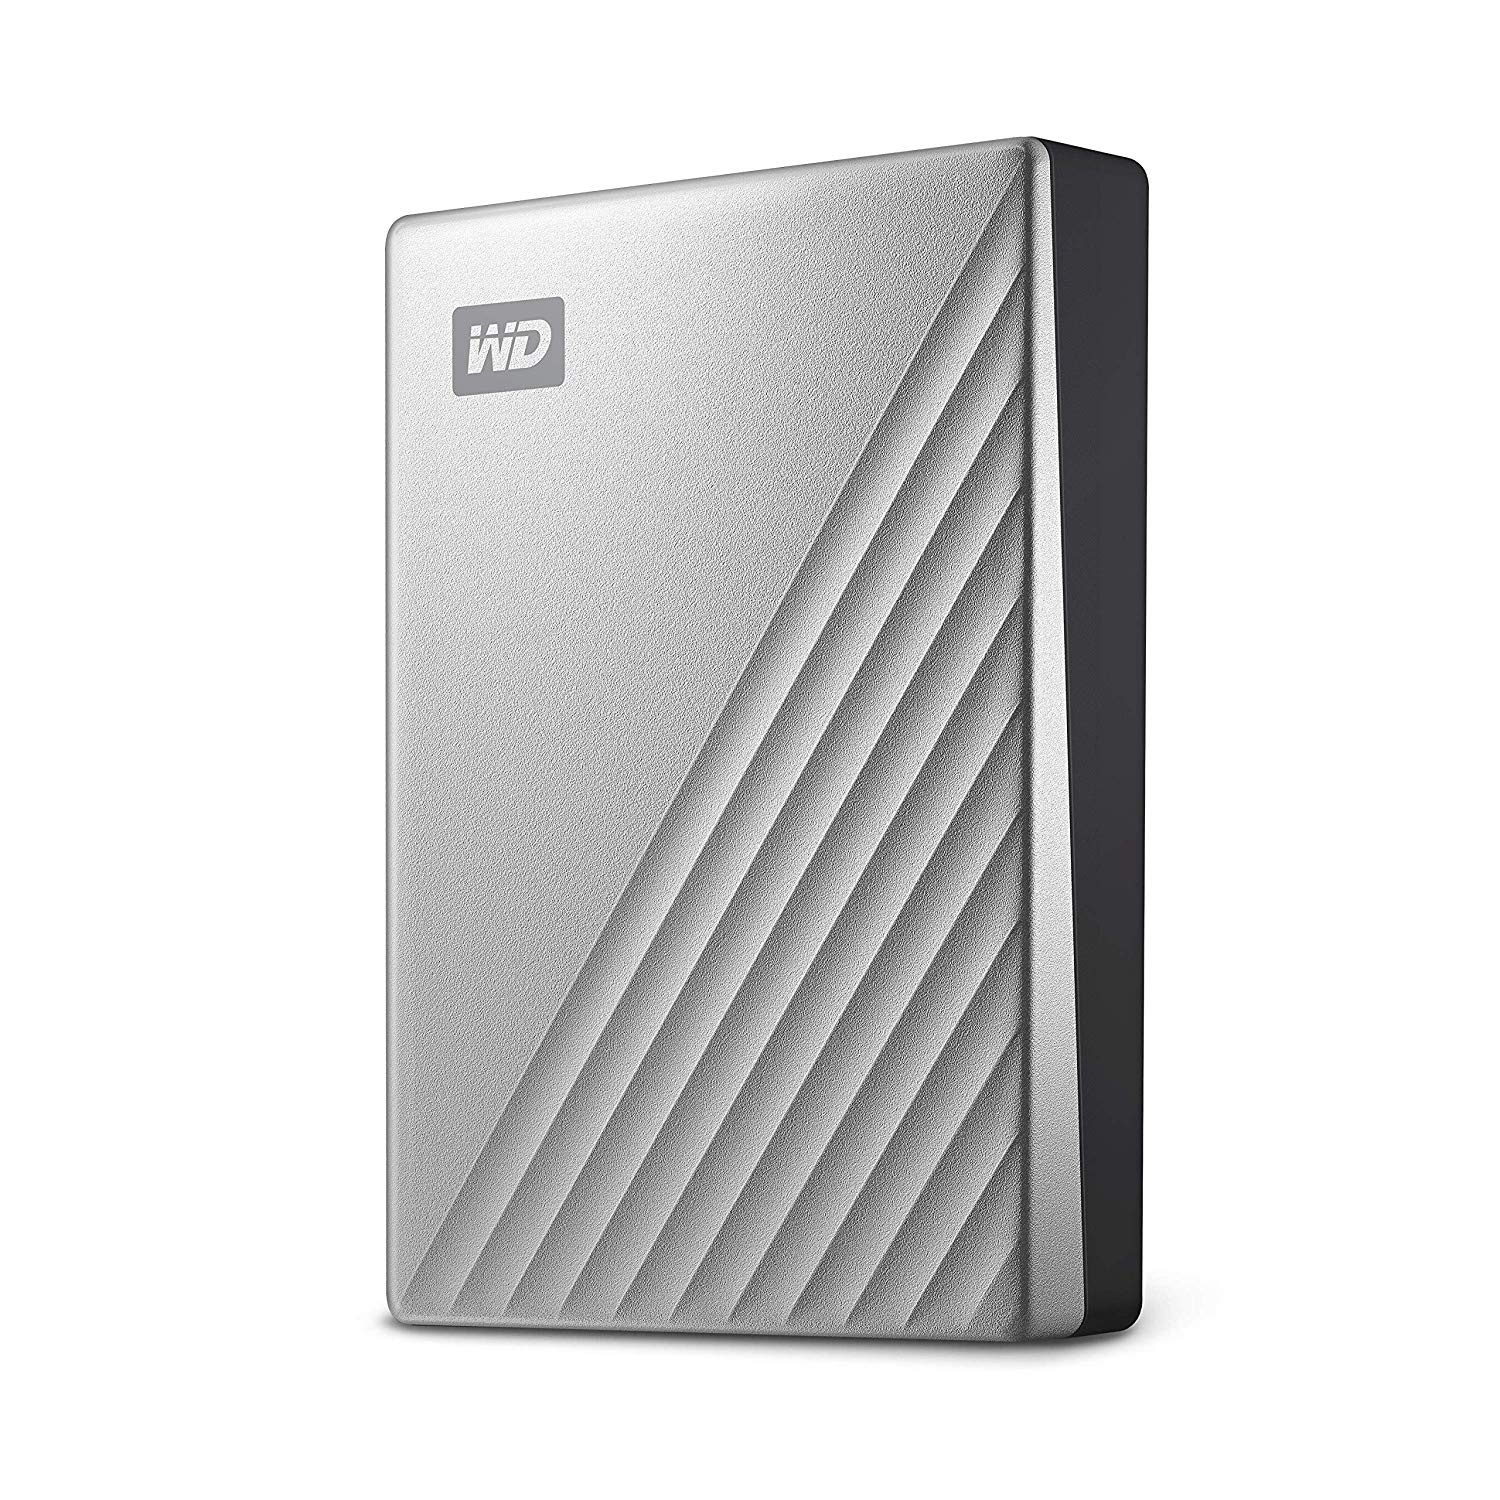 Western Digital My Passport 4 TB  Another affordable option for backup and storage